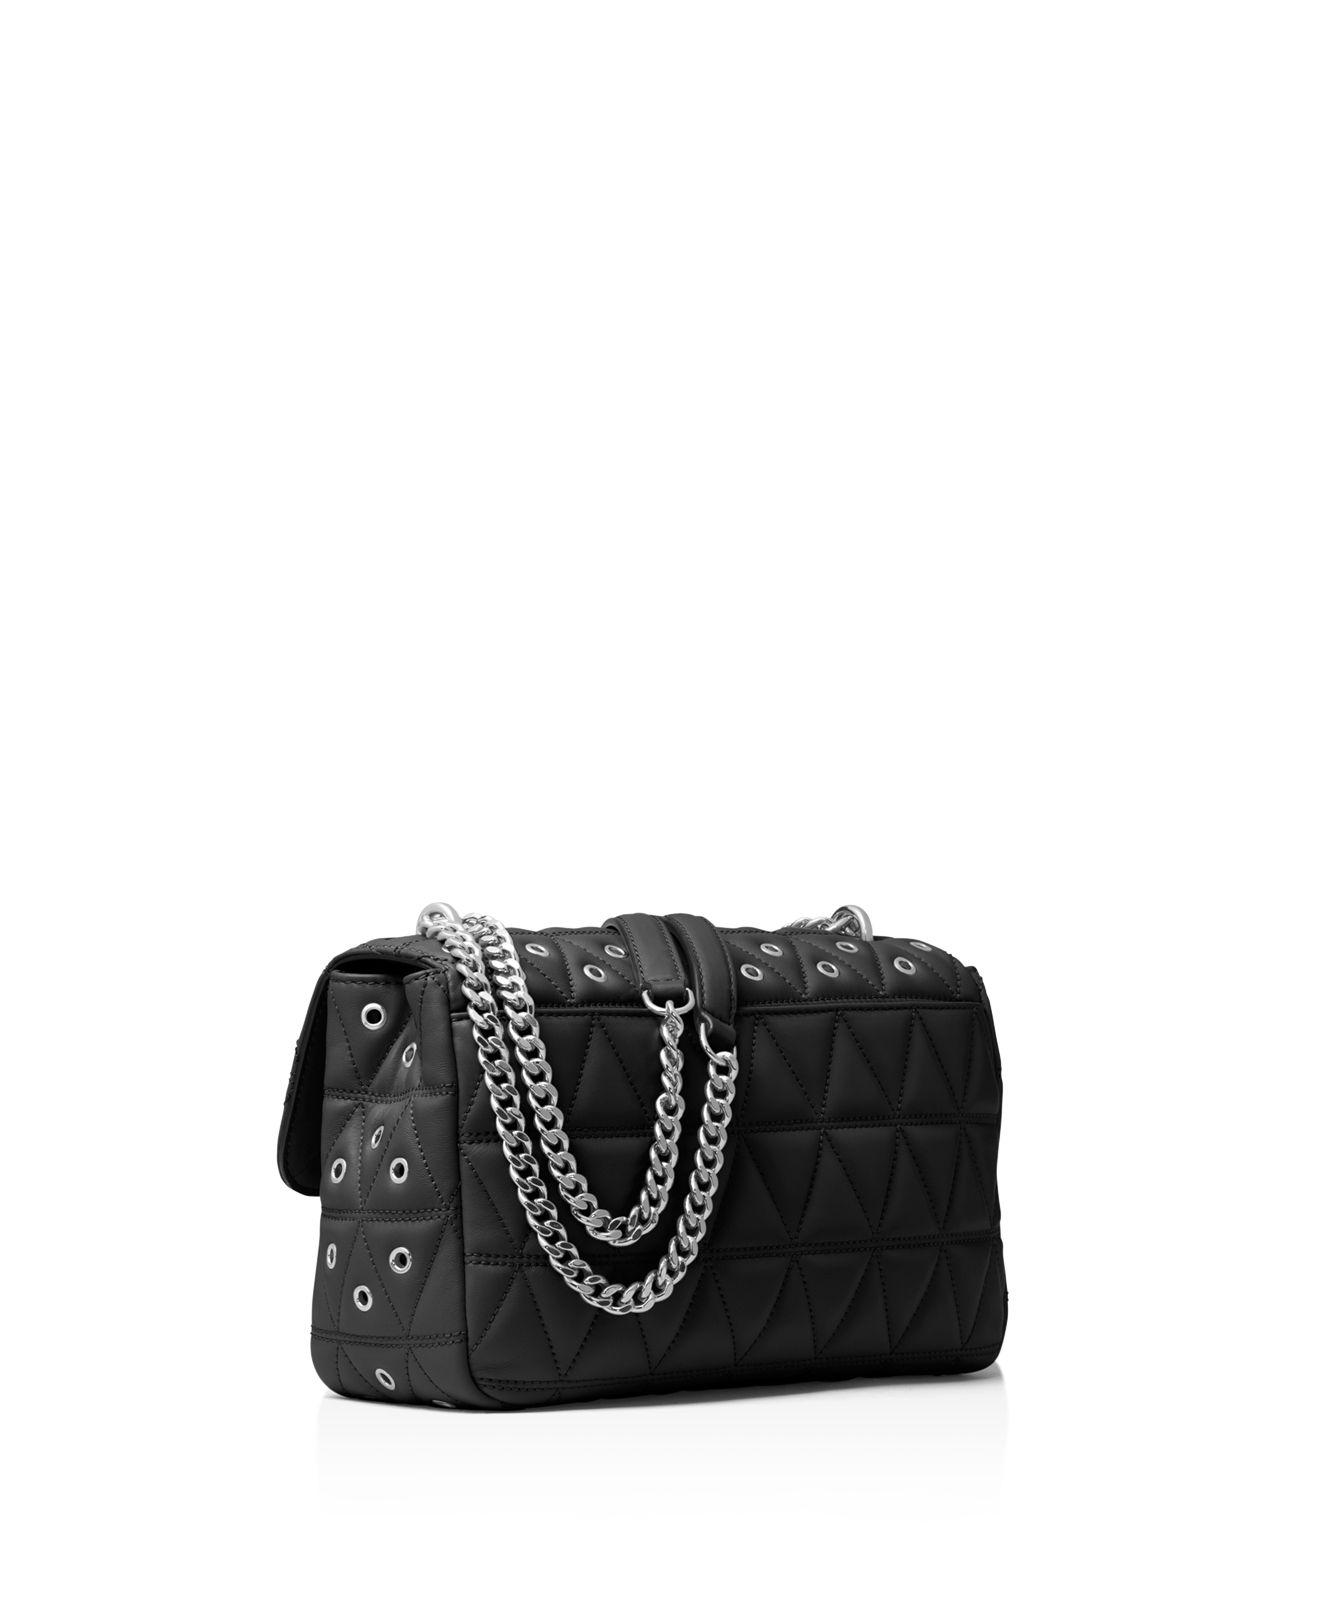 b14b9a134b8e Gallery. Previously sold at: Bloomingdale's · Women's Michael By Michael  Kors Sloan Women's Michael Kors Quilted Bag